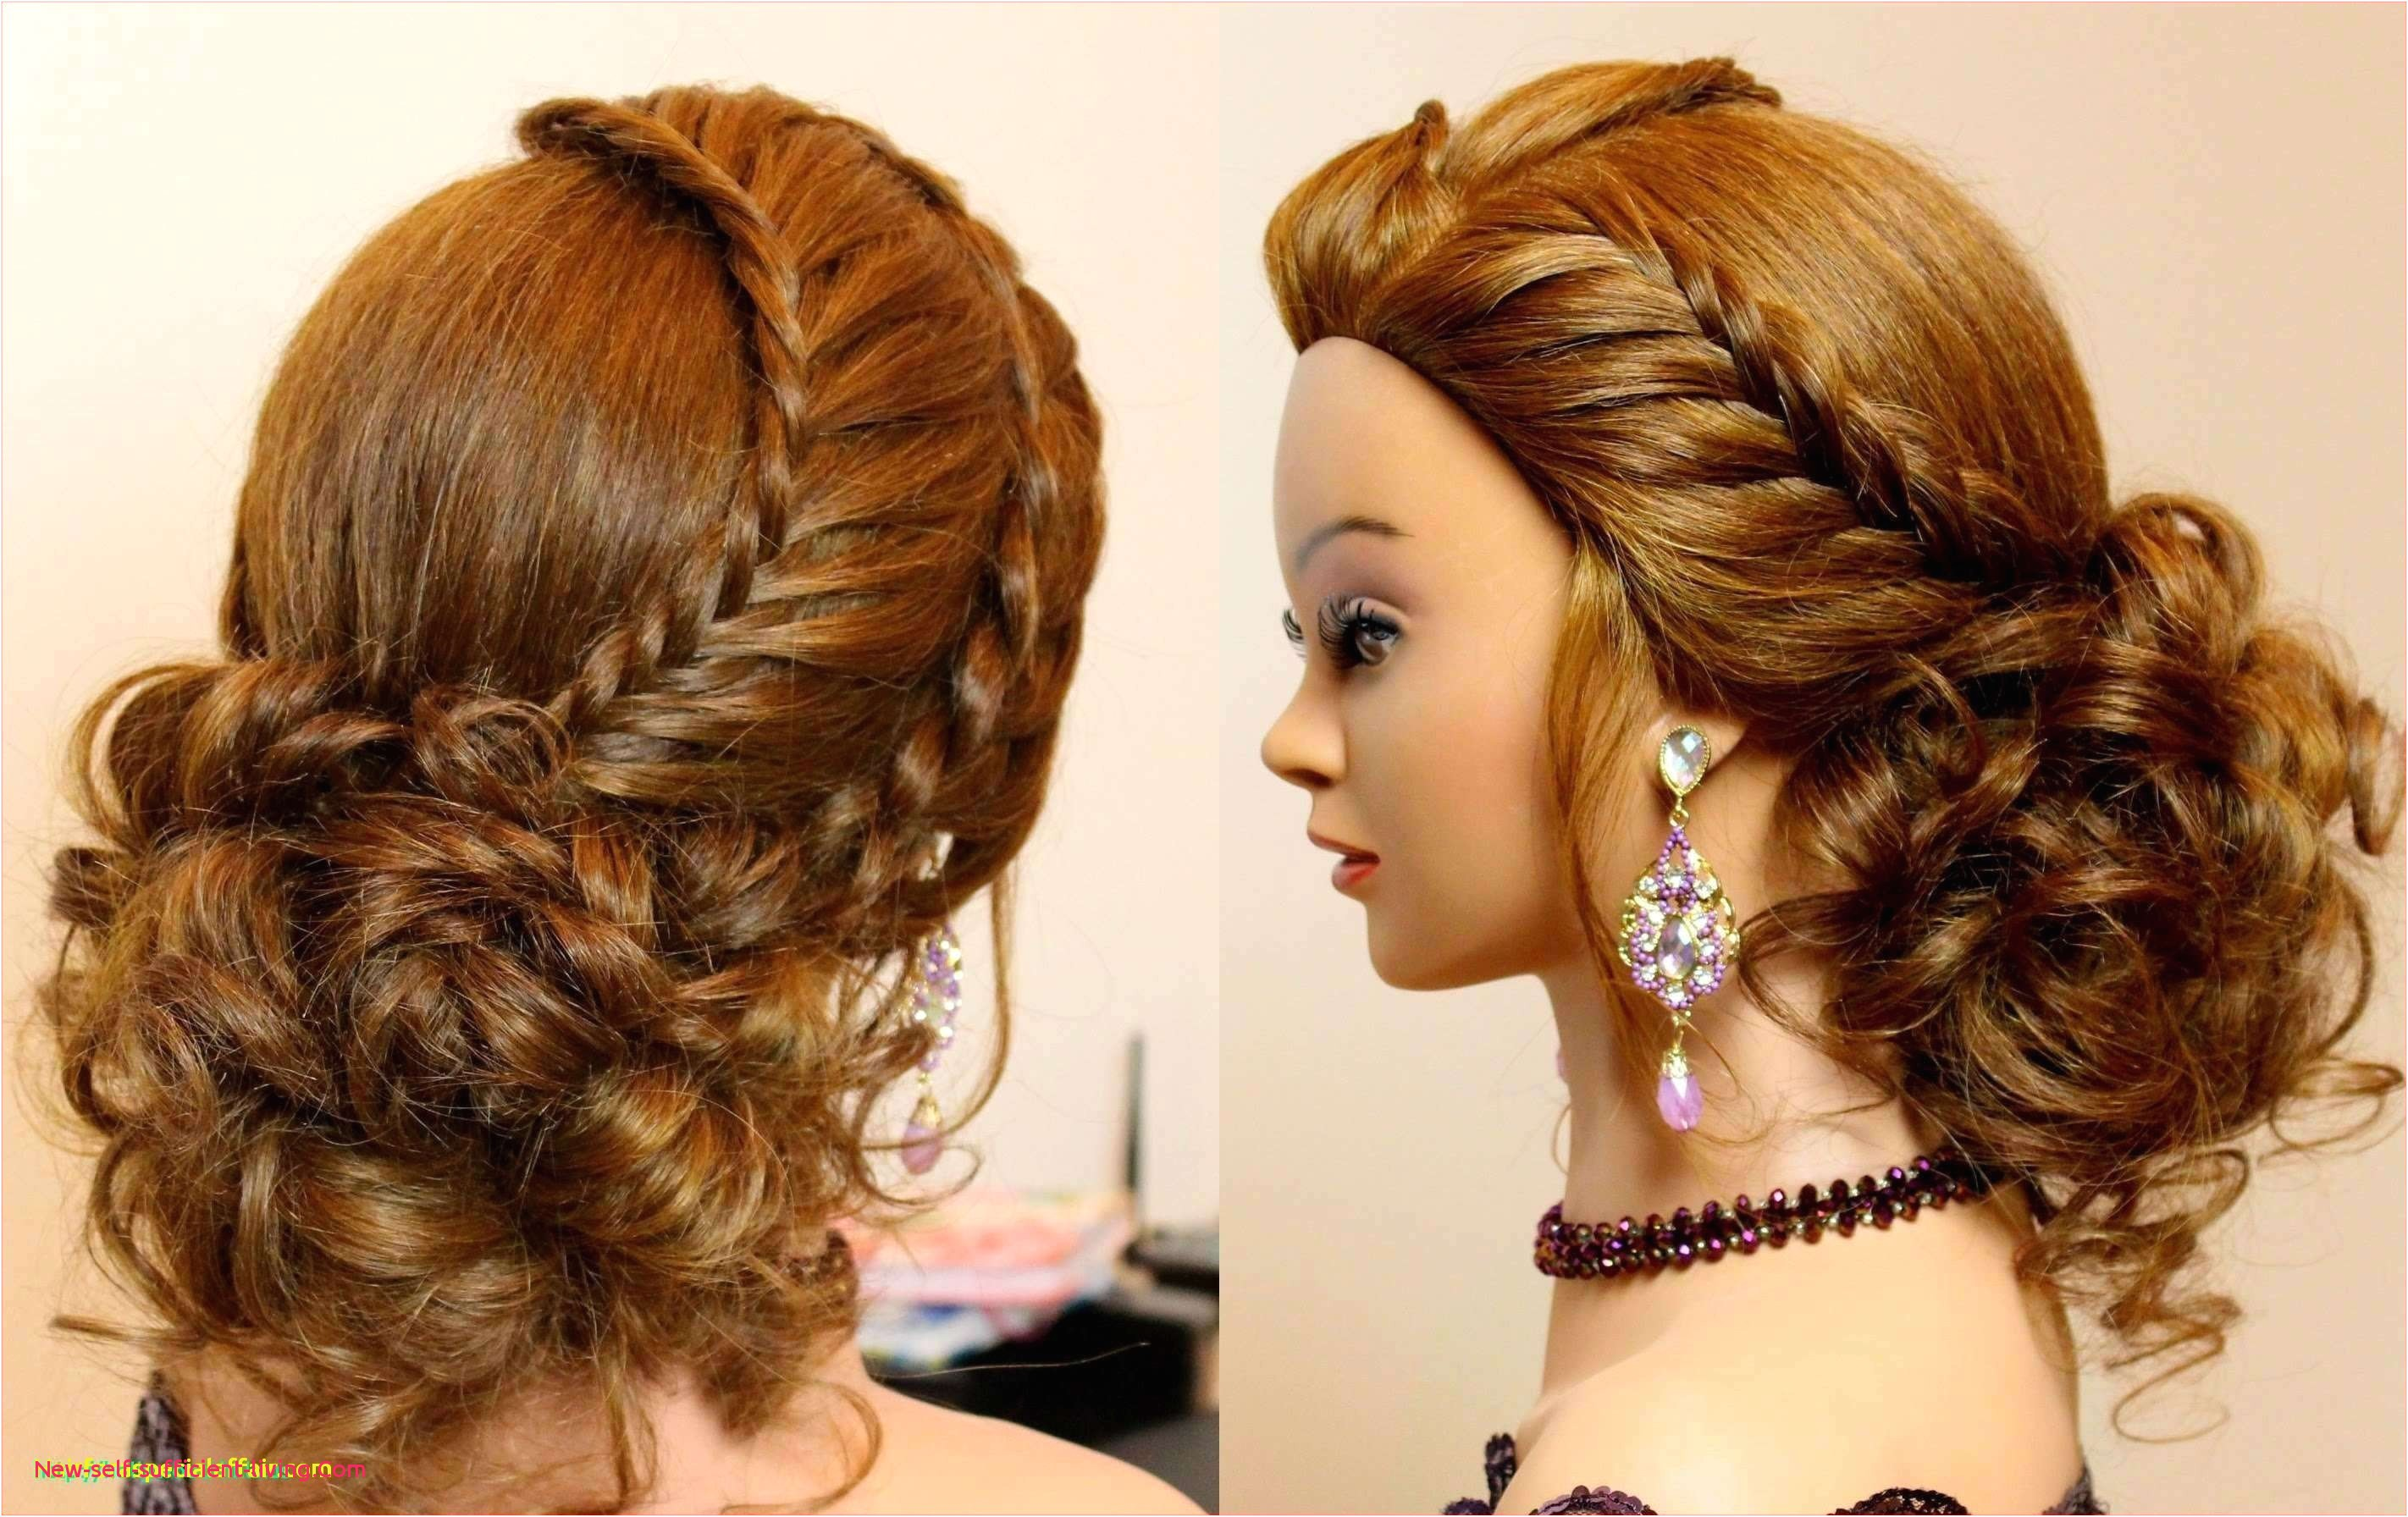 easy braid updo hairstyles new lovely braided bun hairstyles for long hair new self sufficient of easy braid updo hairstyles